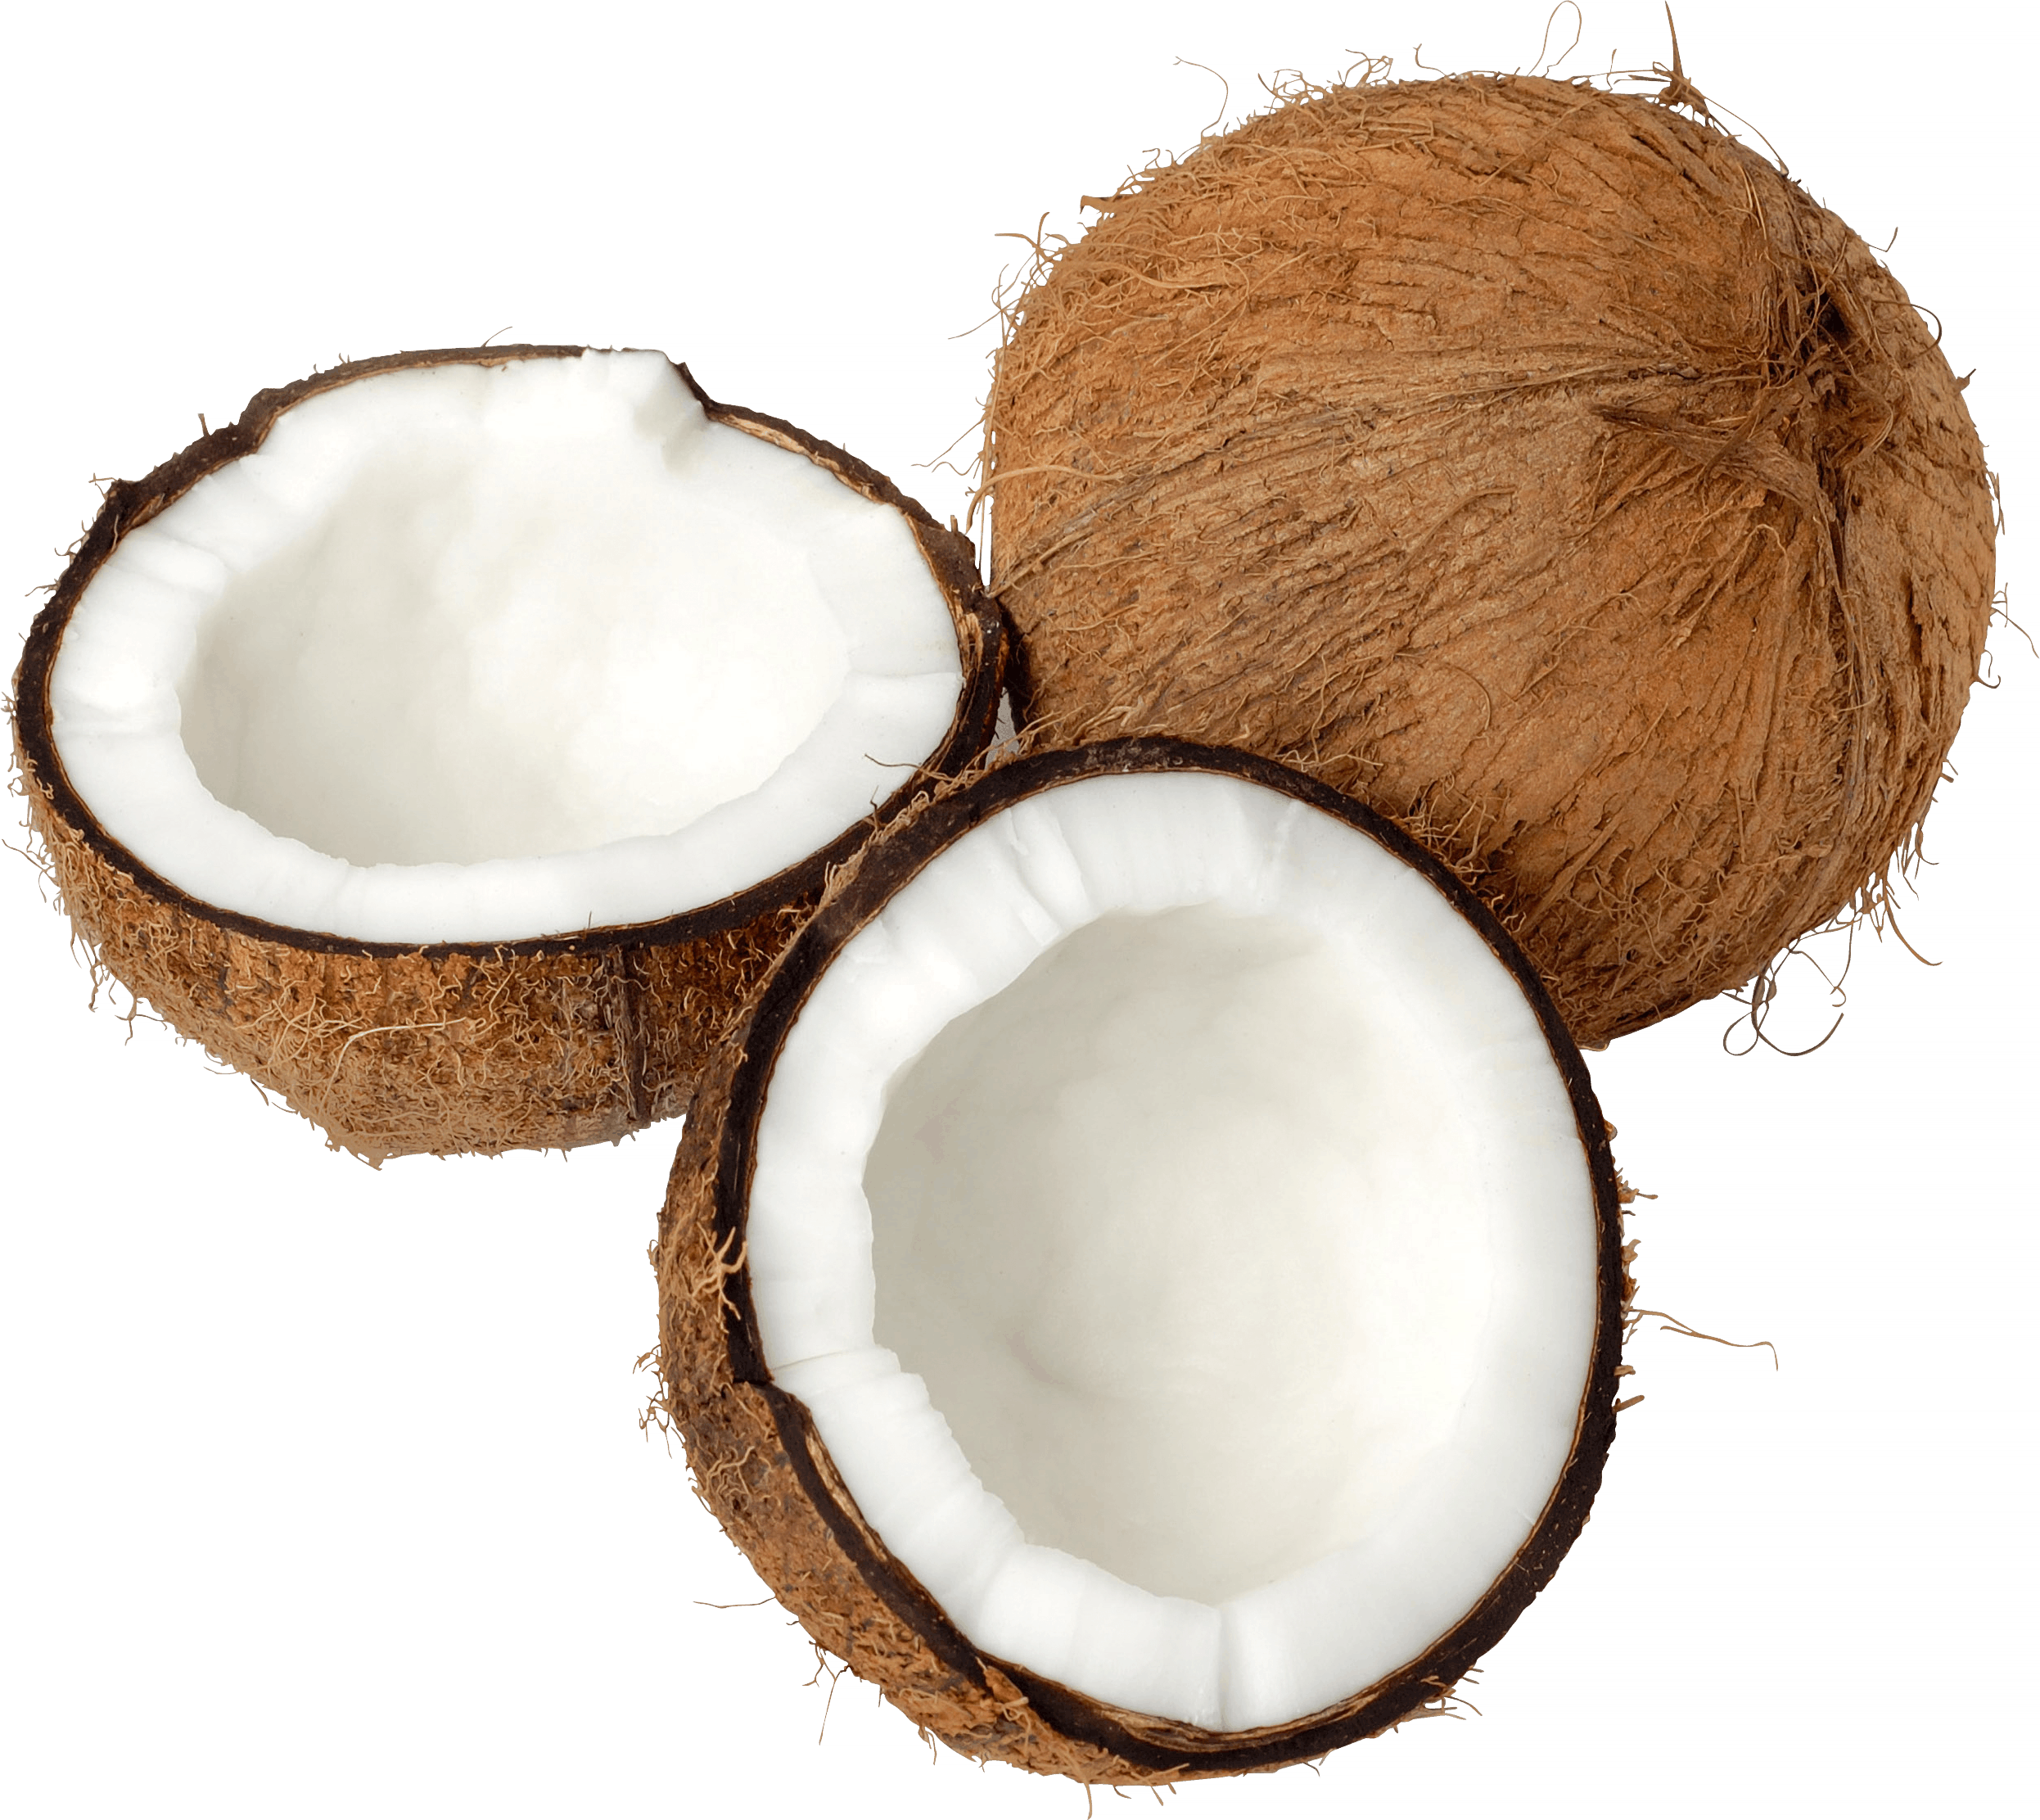 Coconut clipart clear background. Trio open transparent png